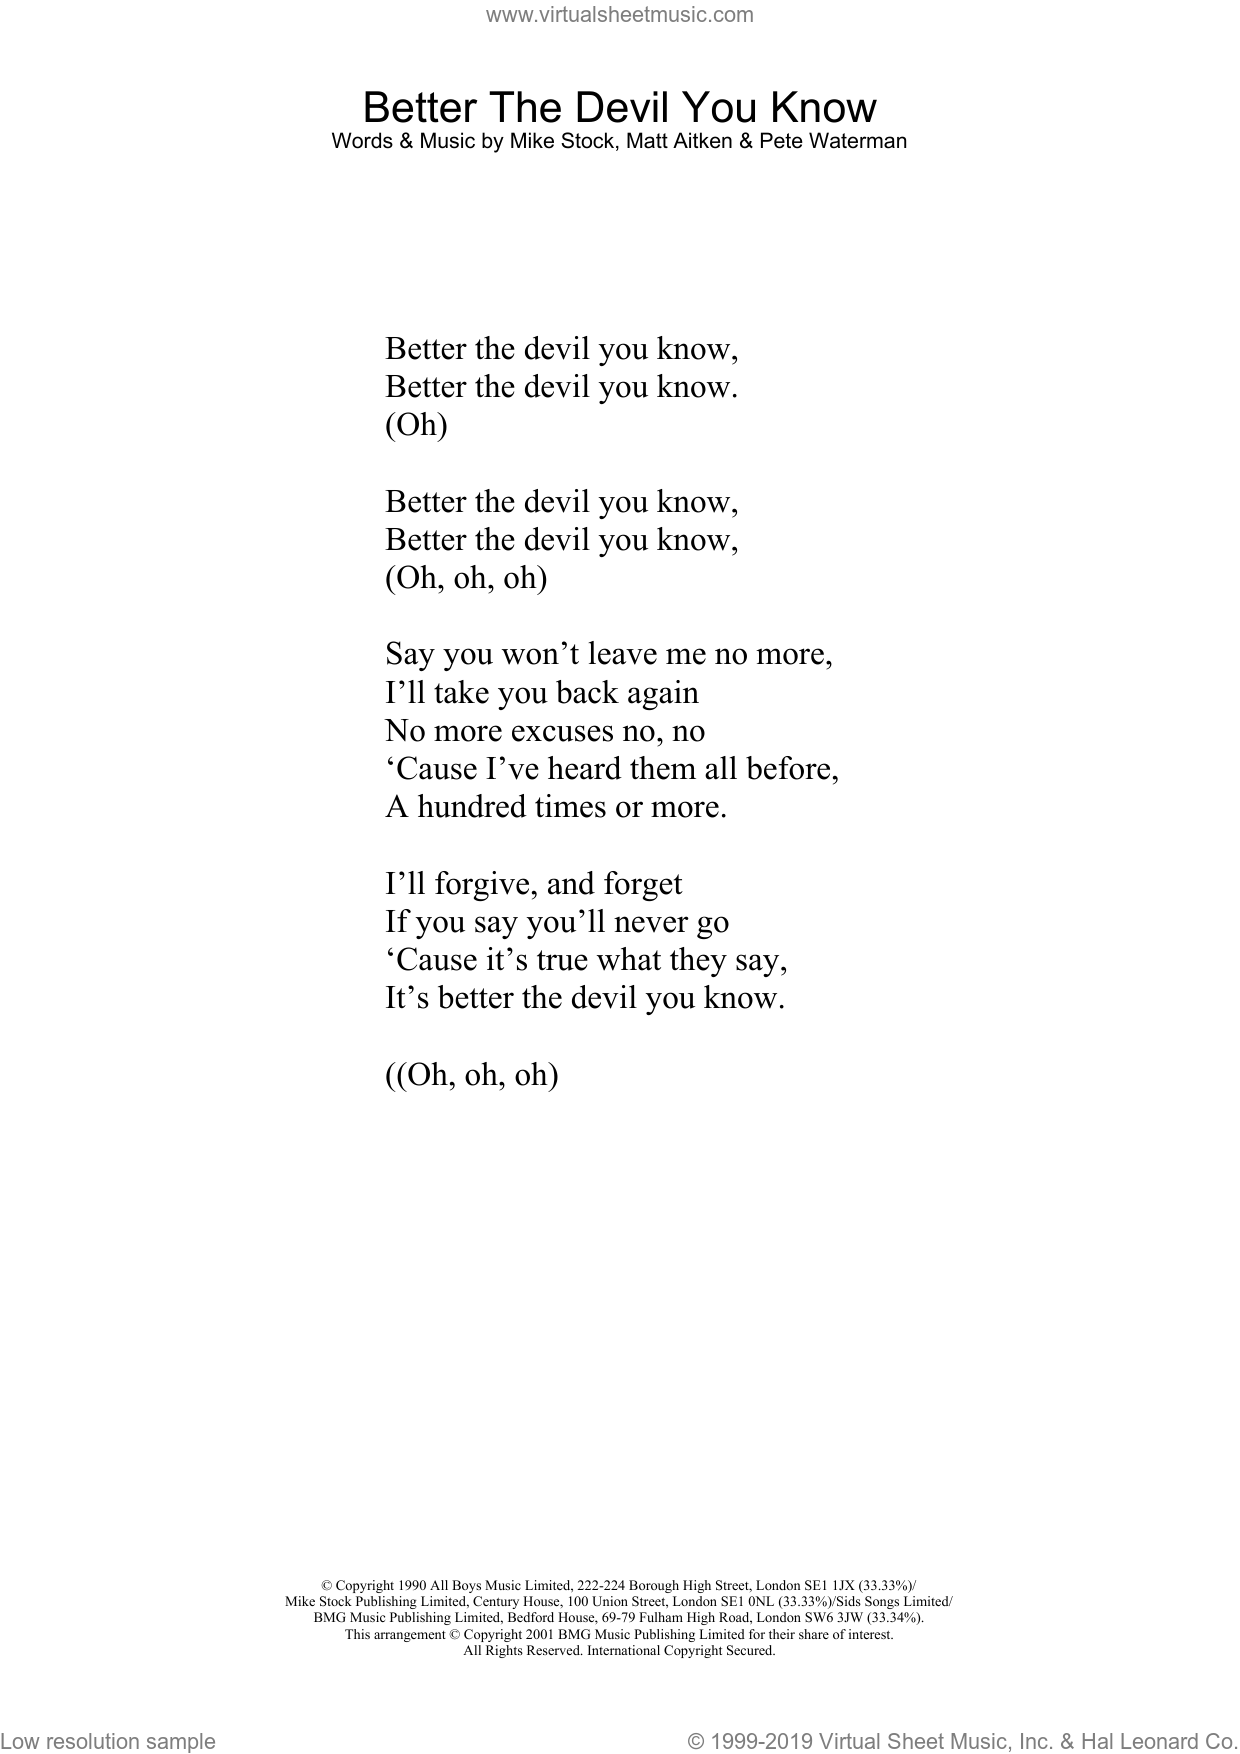 Better The Devil You Know sheet music for voice and other instruments (lyrics only) by Kylie Minogue